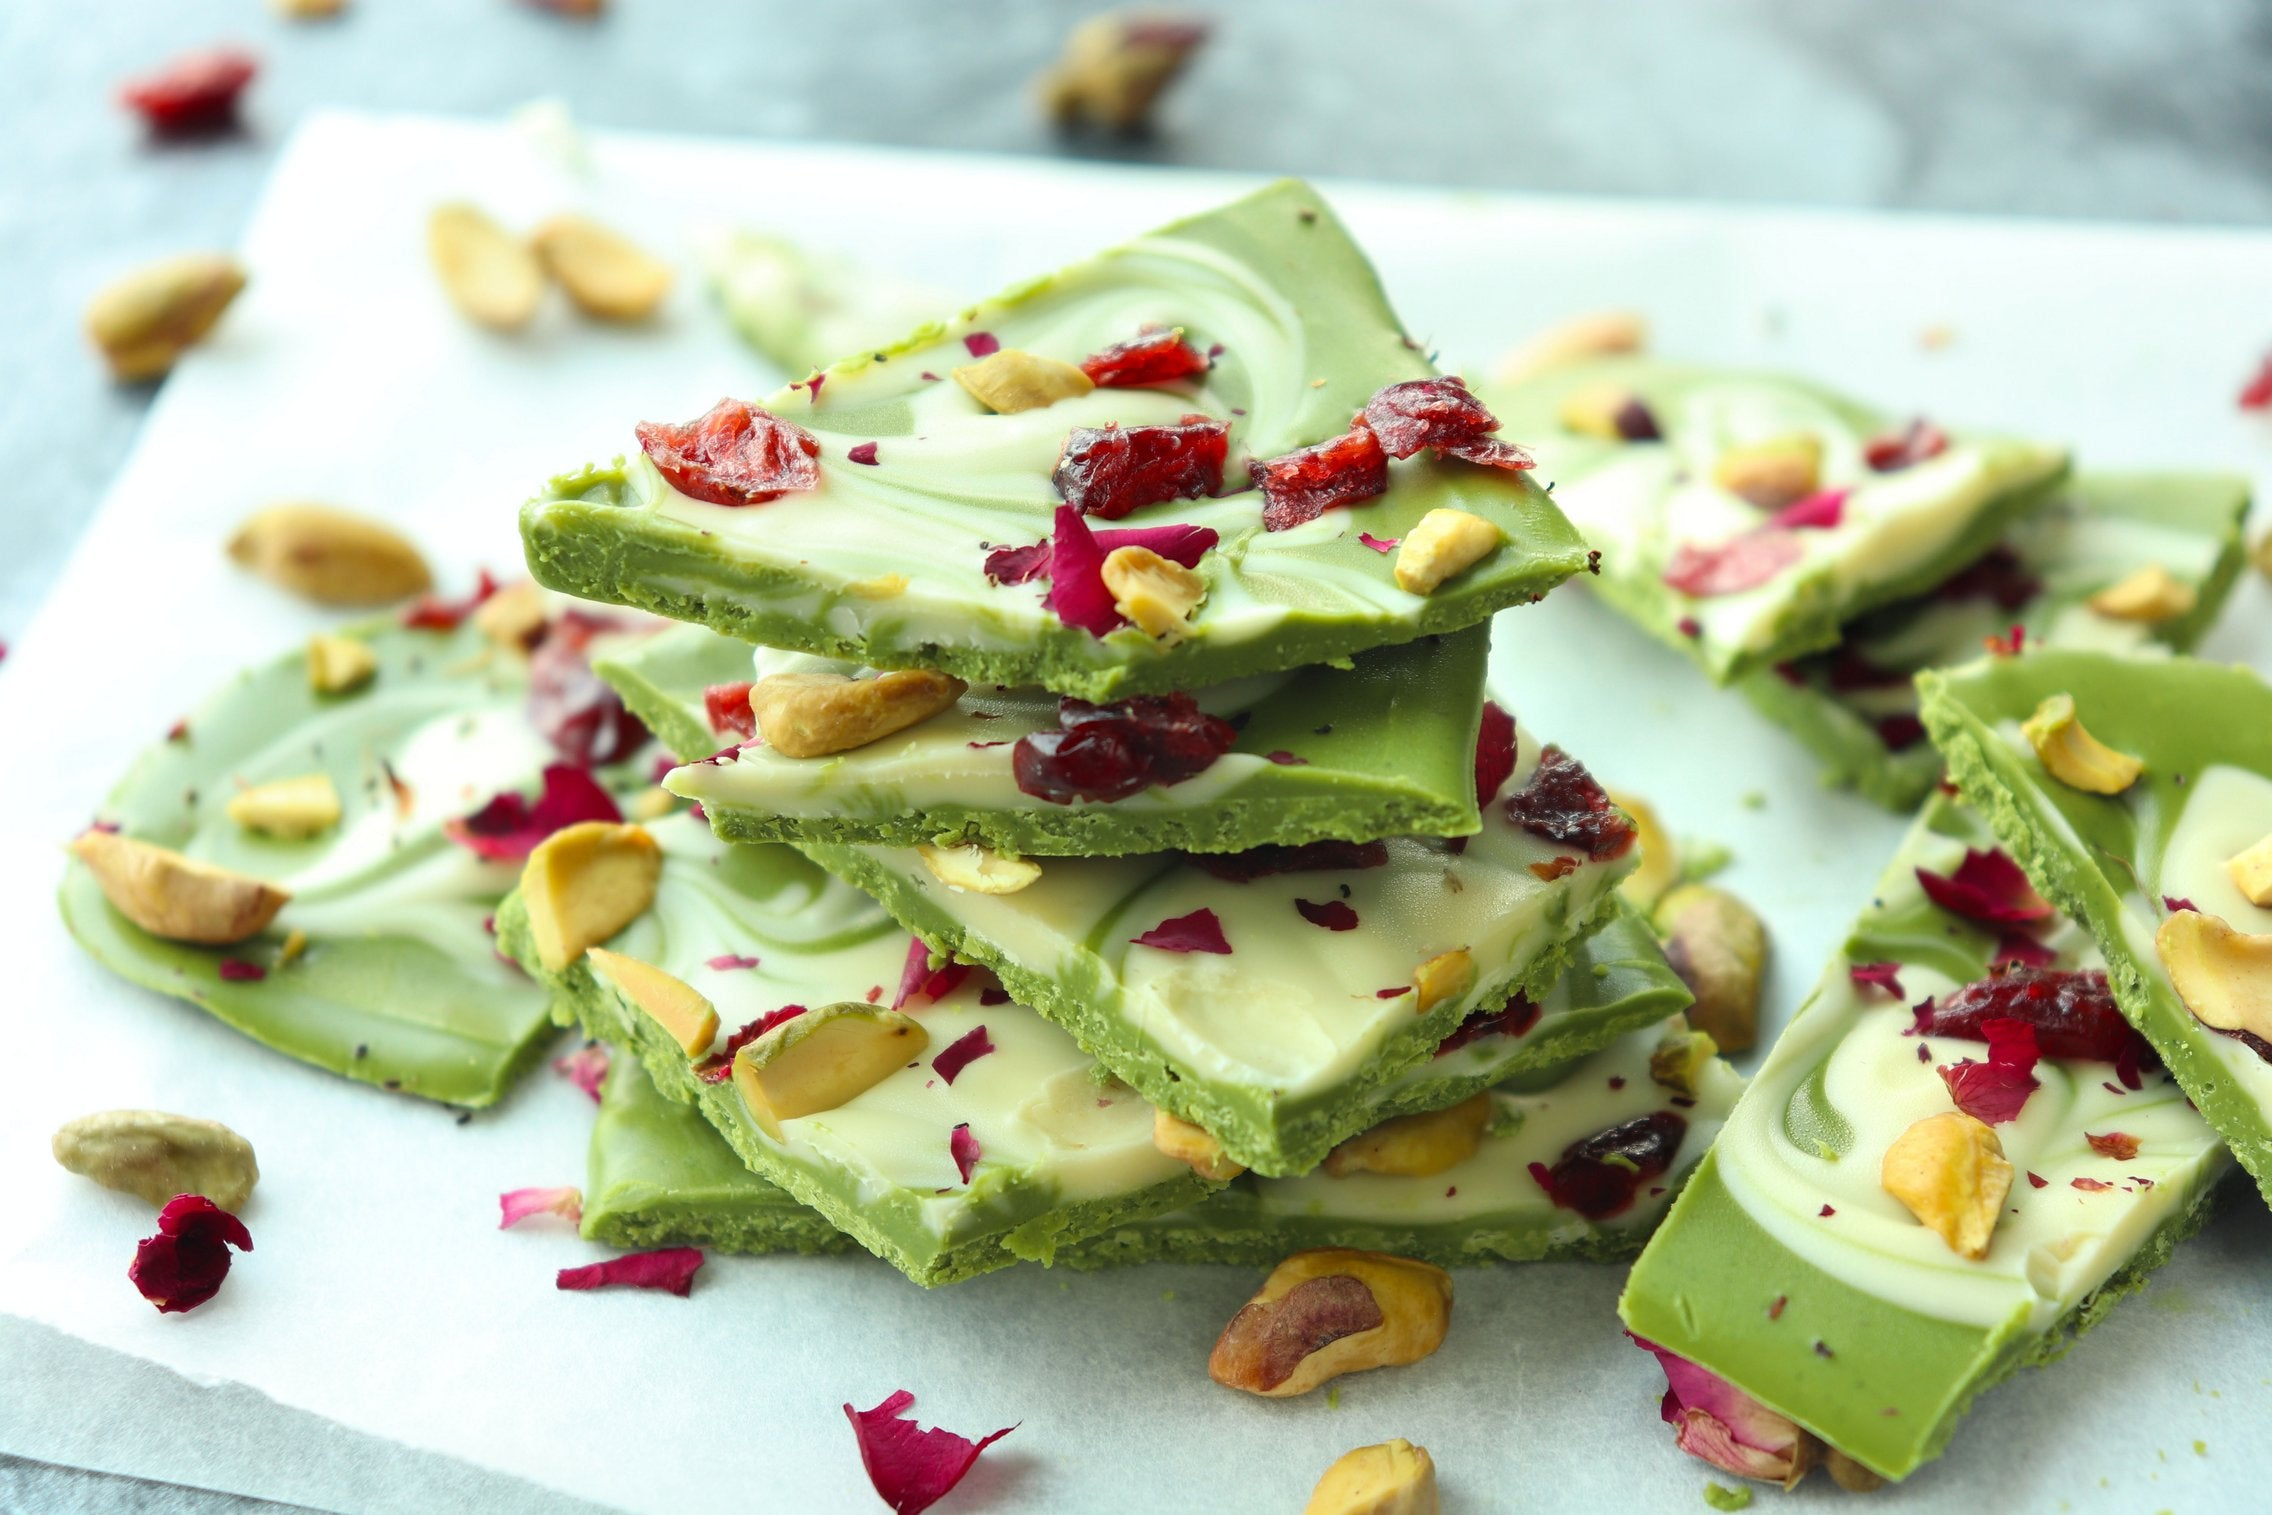 matcha-white-chocolate-bark-with-pistachios-and-dried-cranberries-result